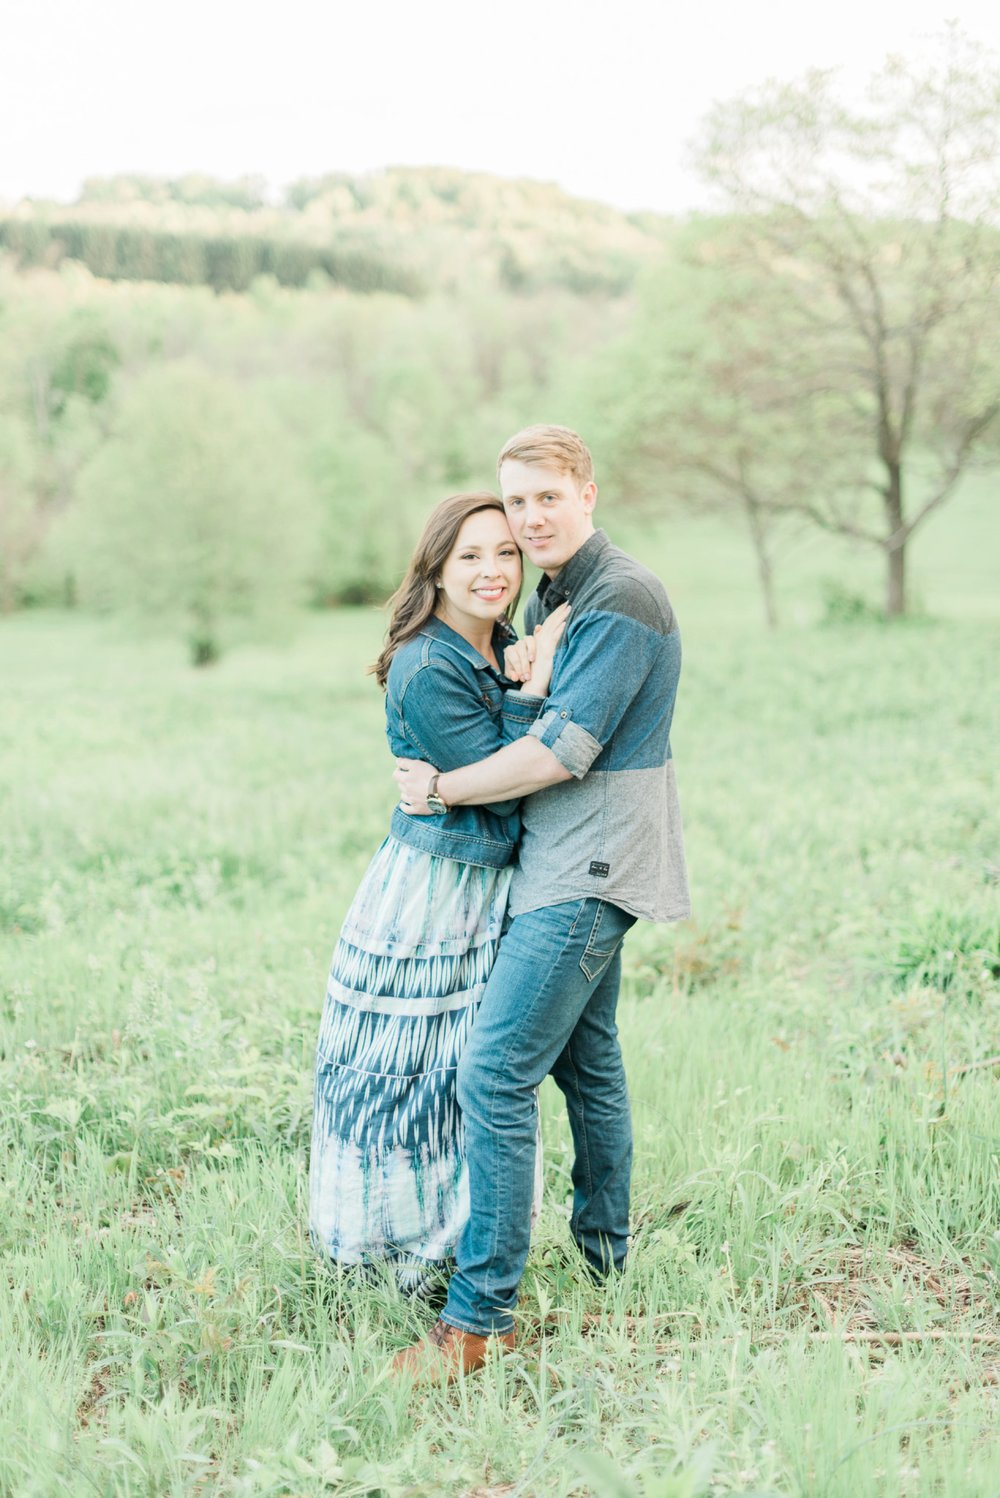 chestnut-ridge-metro-park-engagement-carroll-ohio-49.jpg